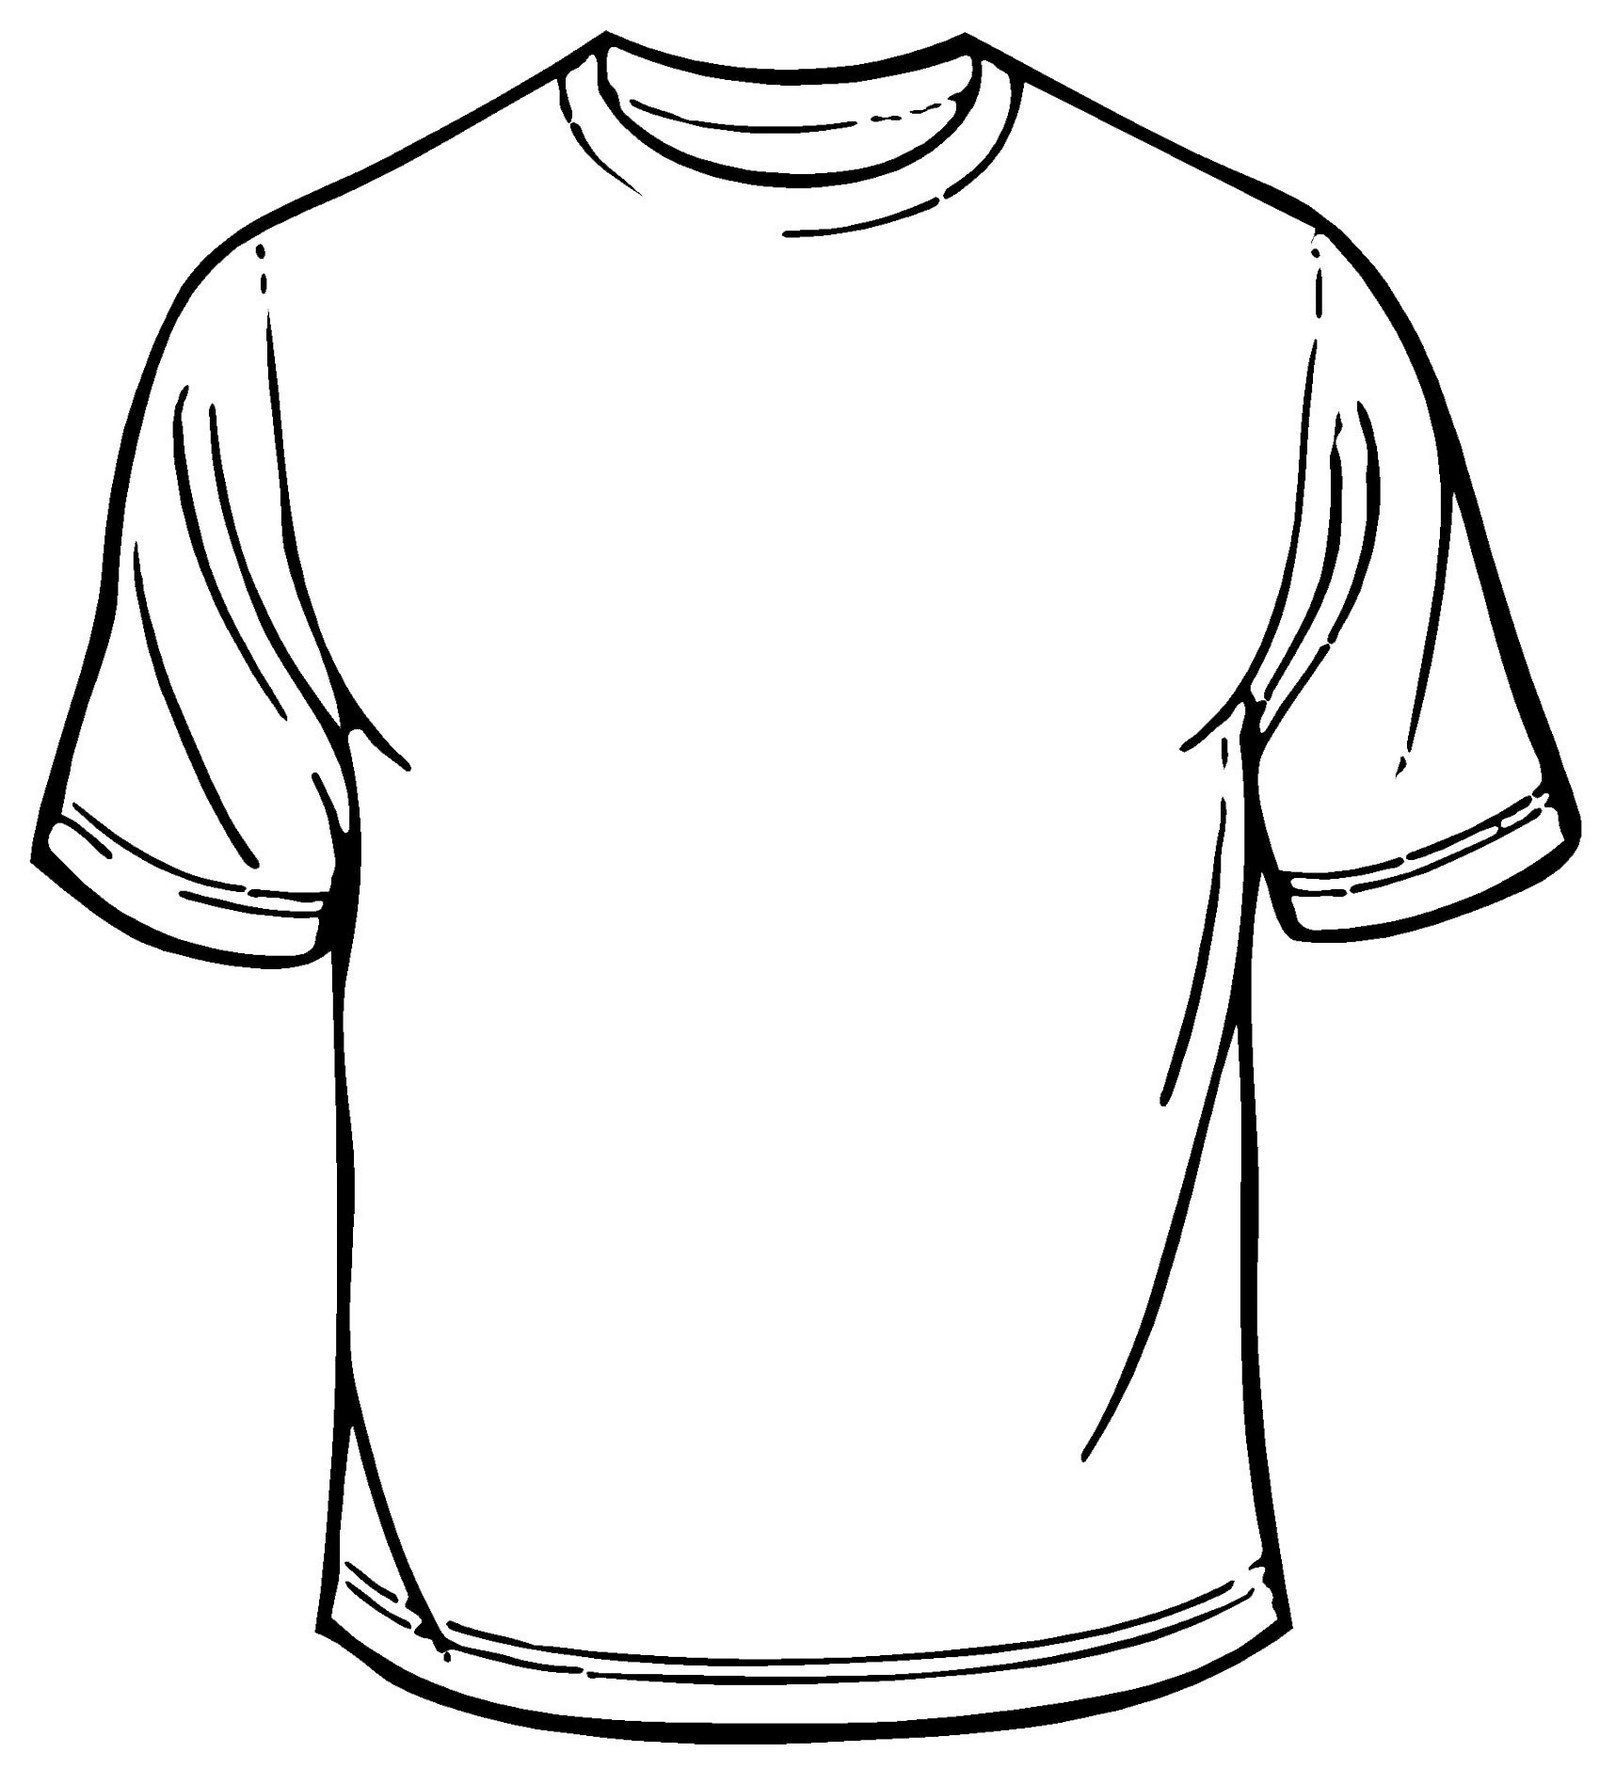 blank t shirt coloring sheet printable tshirt coloring